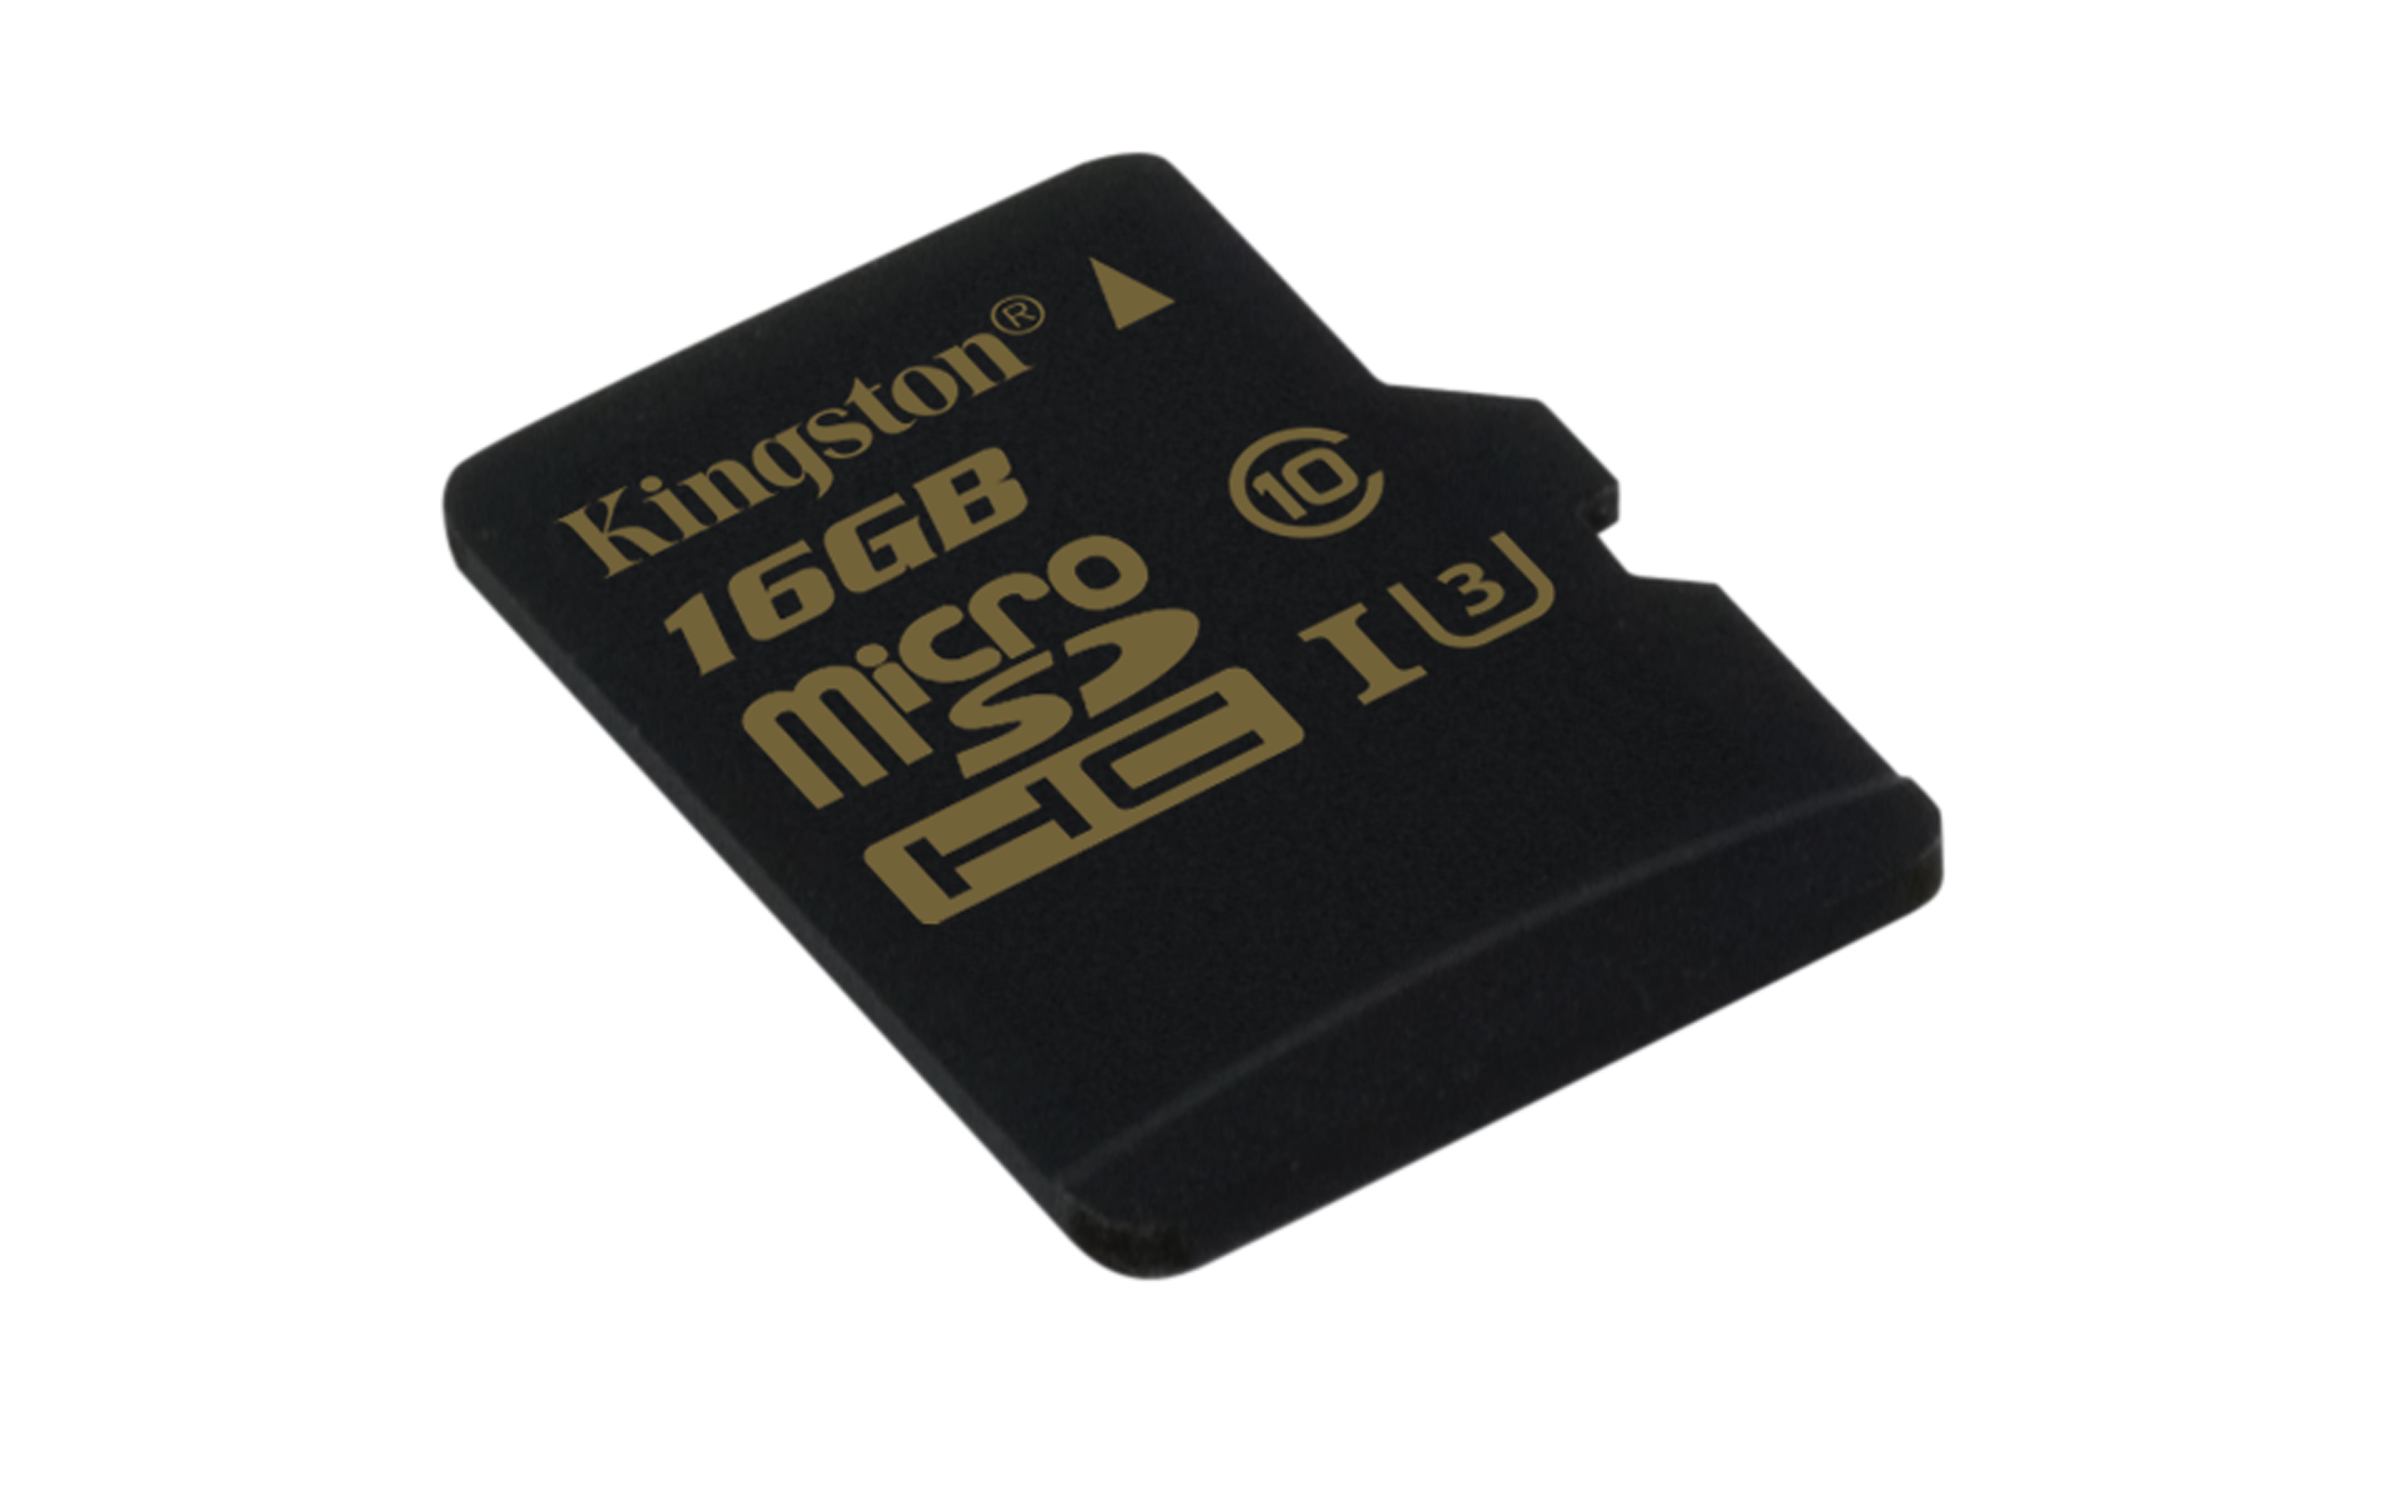 kingston-presenta-una-nueva-tarjeta-flash-class-3-microsd-que-se-une-a-la-serie-gold